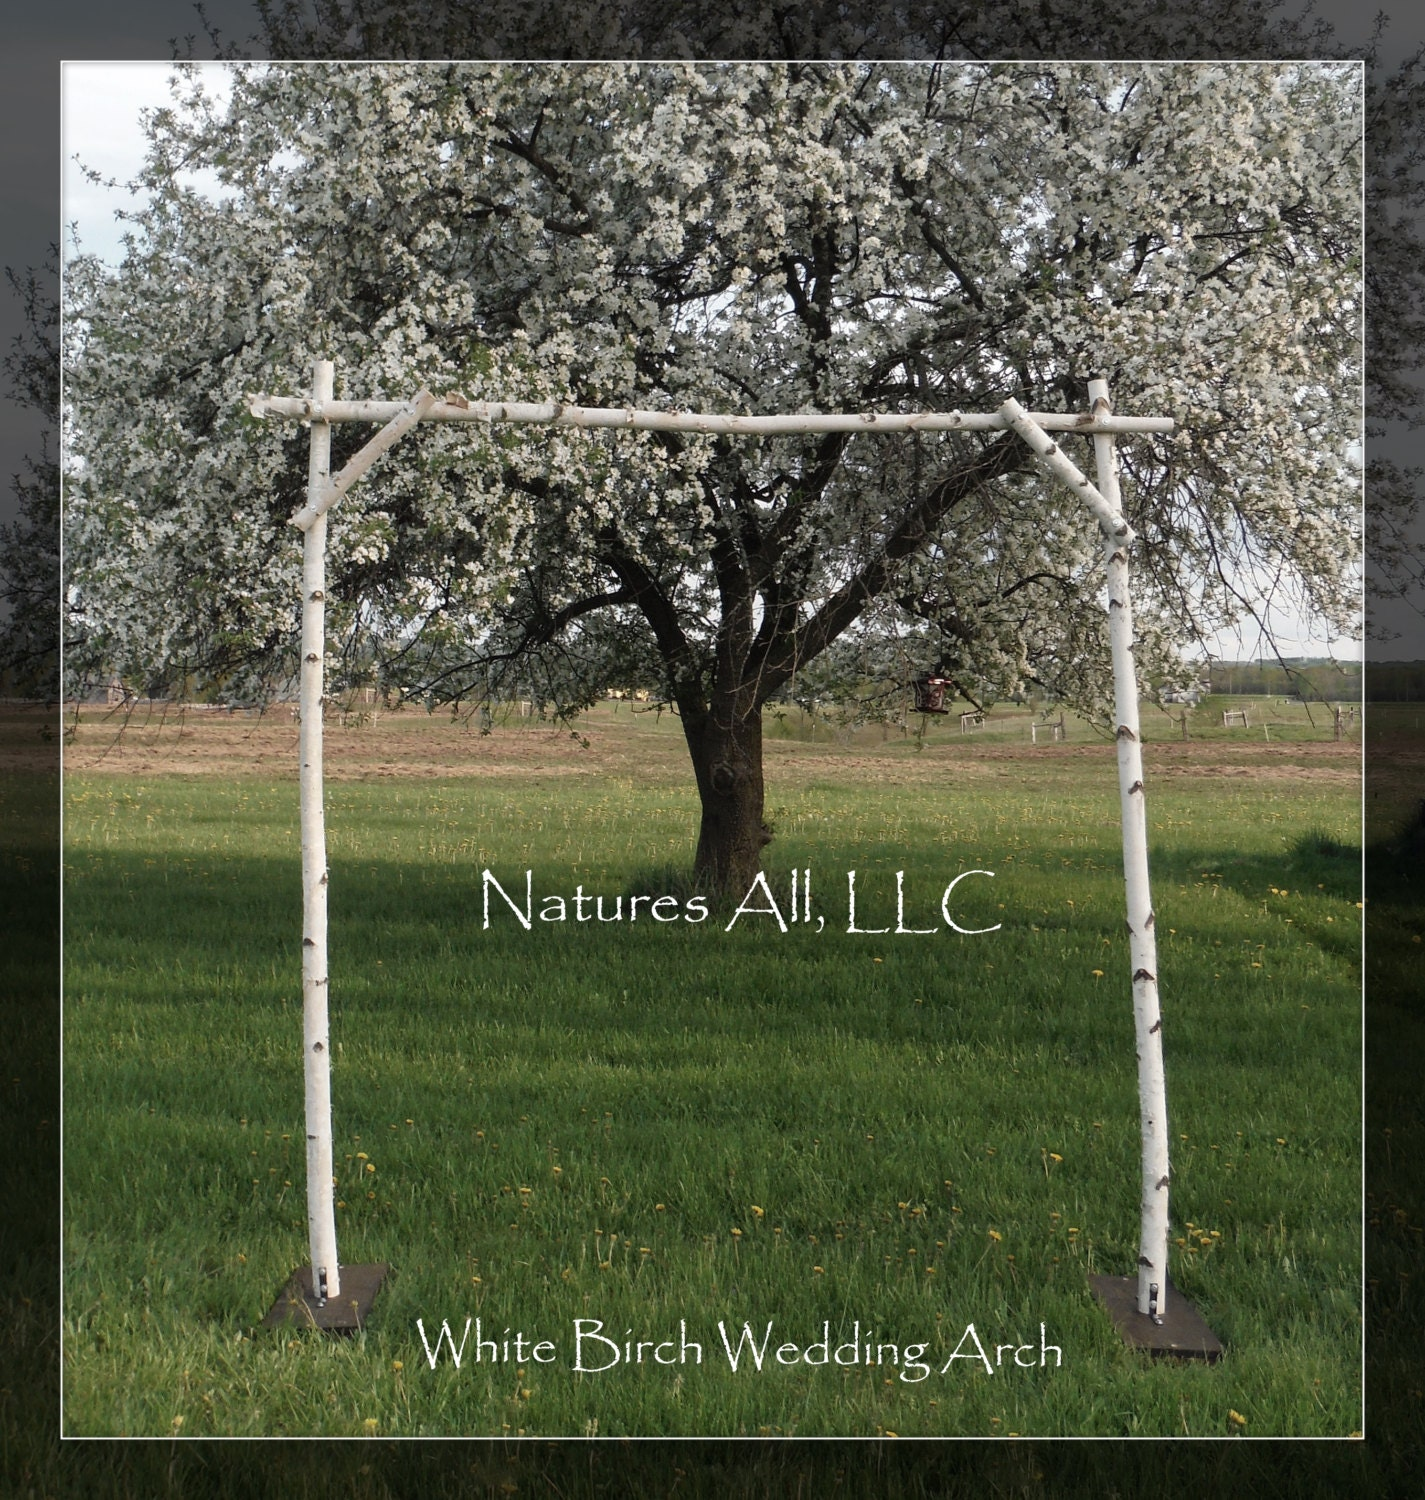 Wedding Arch Diy Ideas: White Birch Wedding Arch/White Birch Arbor/Complete Kit For